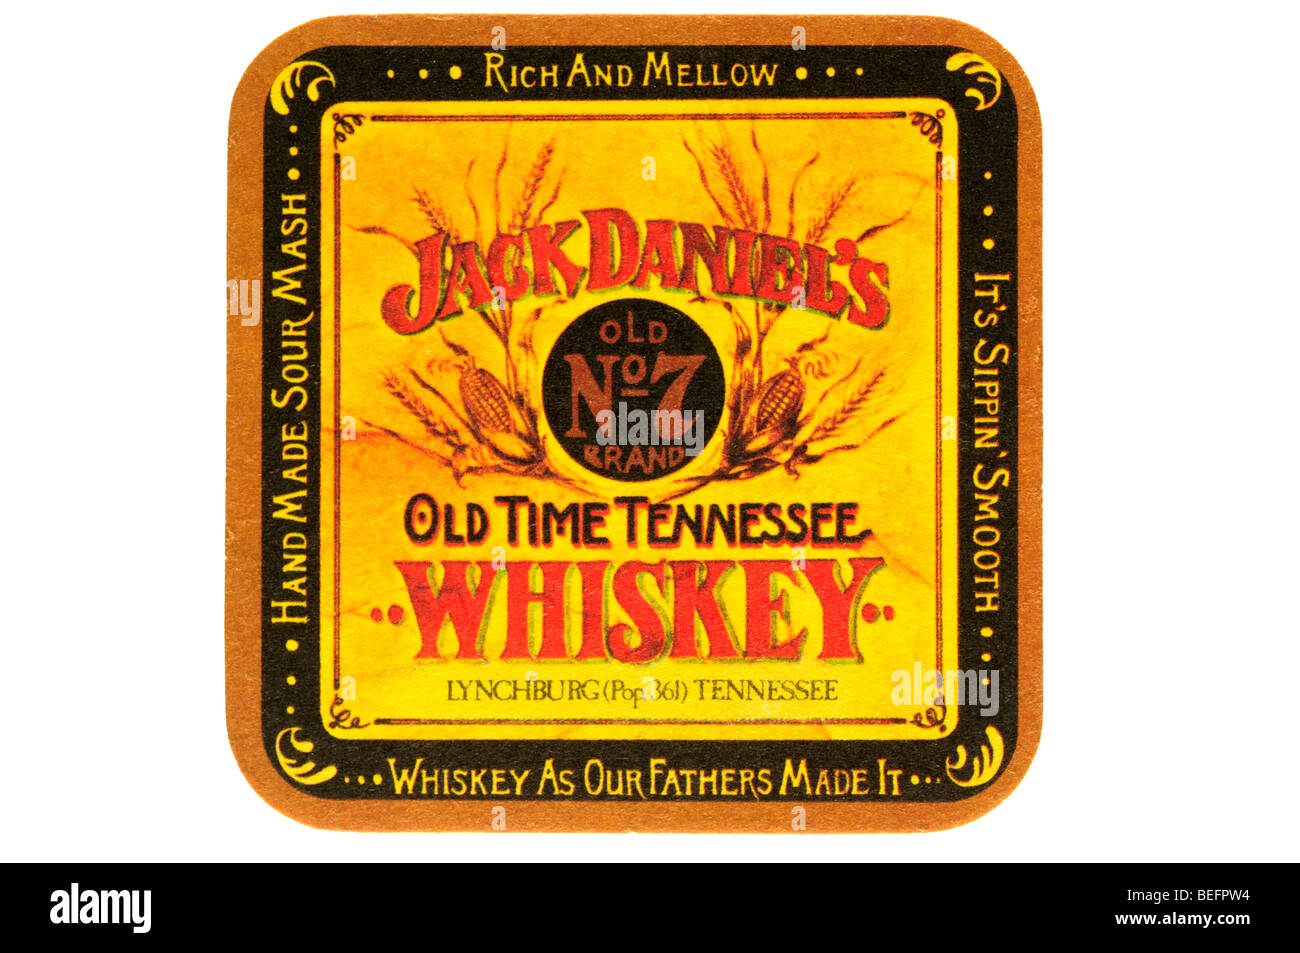 jack daniels old no 7 brand old time tennessee whiskey lynchburg pop 361 tennessee whiskey as our fathers made it Stock Photo